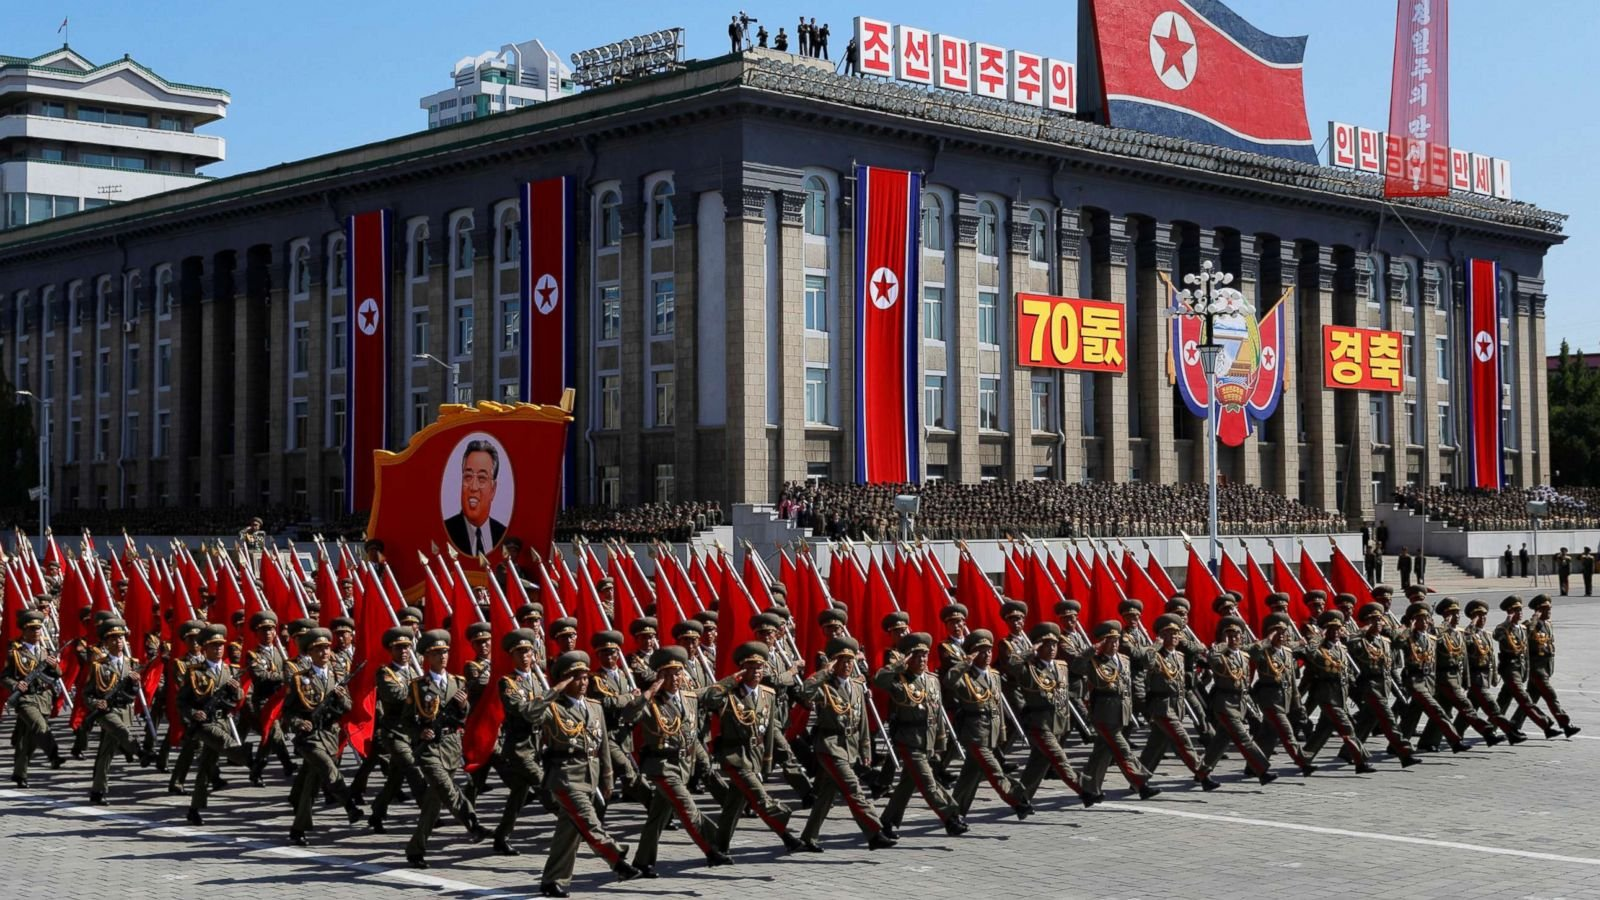 north-korea-parade-7-rt-jt-180909_hpMain_16x9_1600.jpg